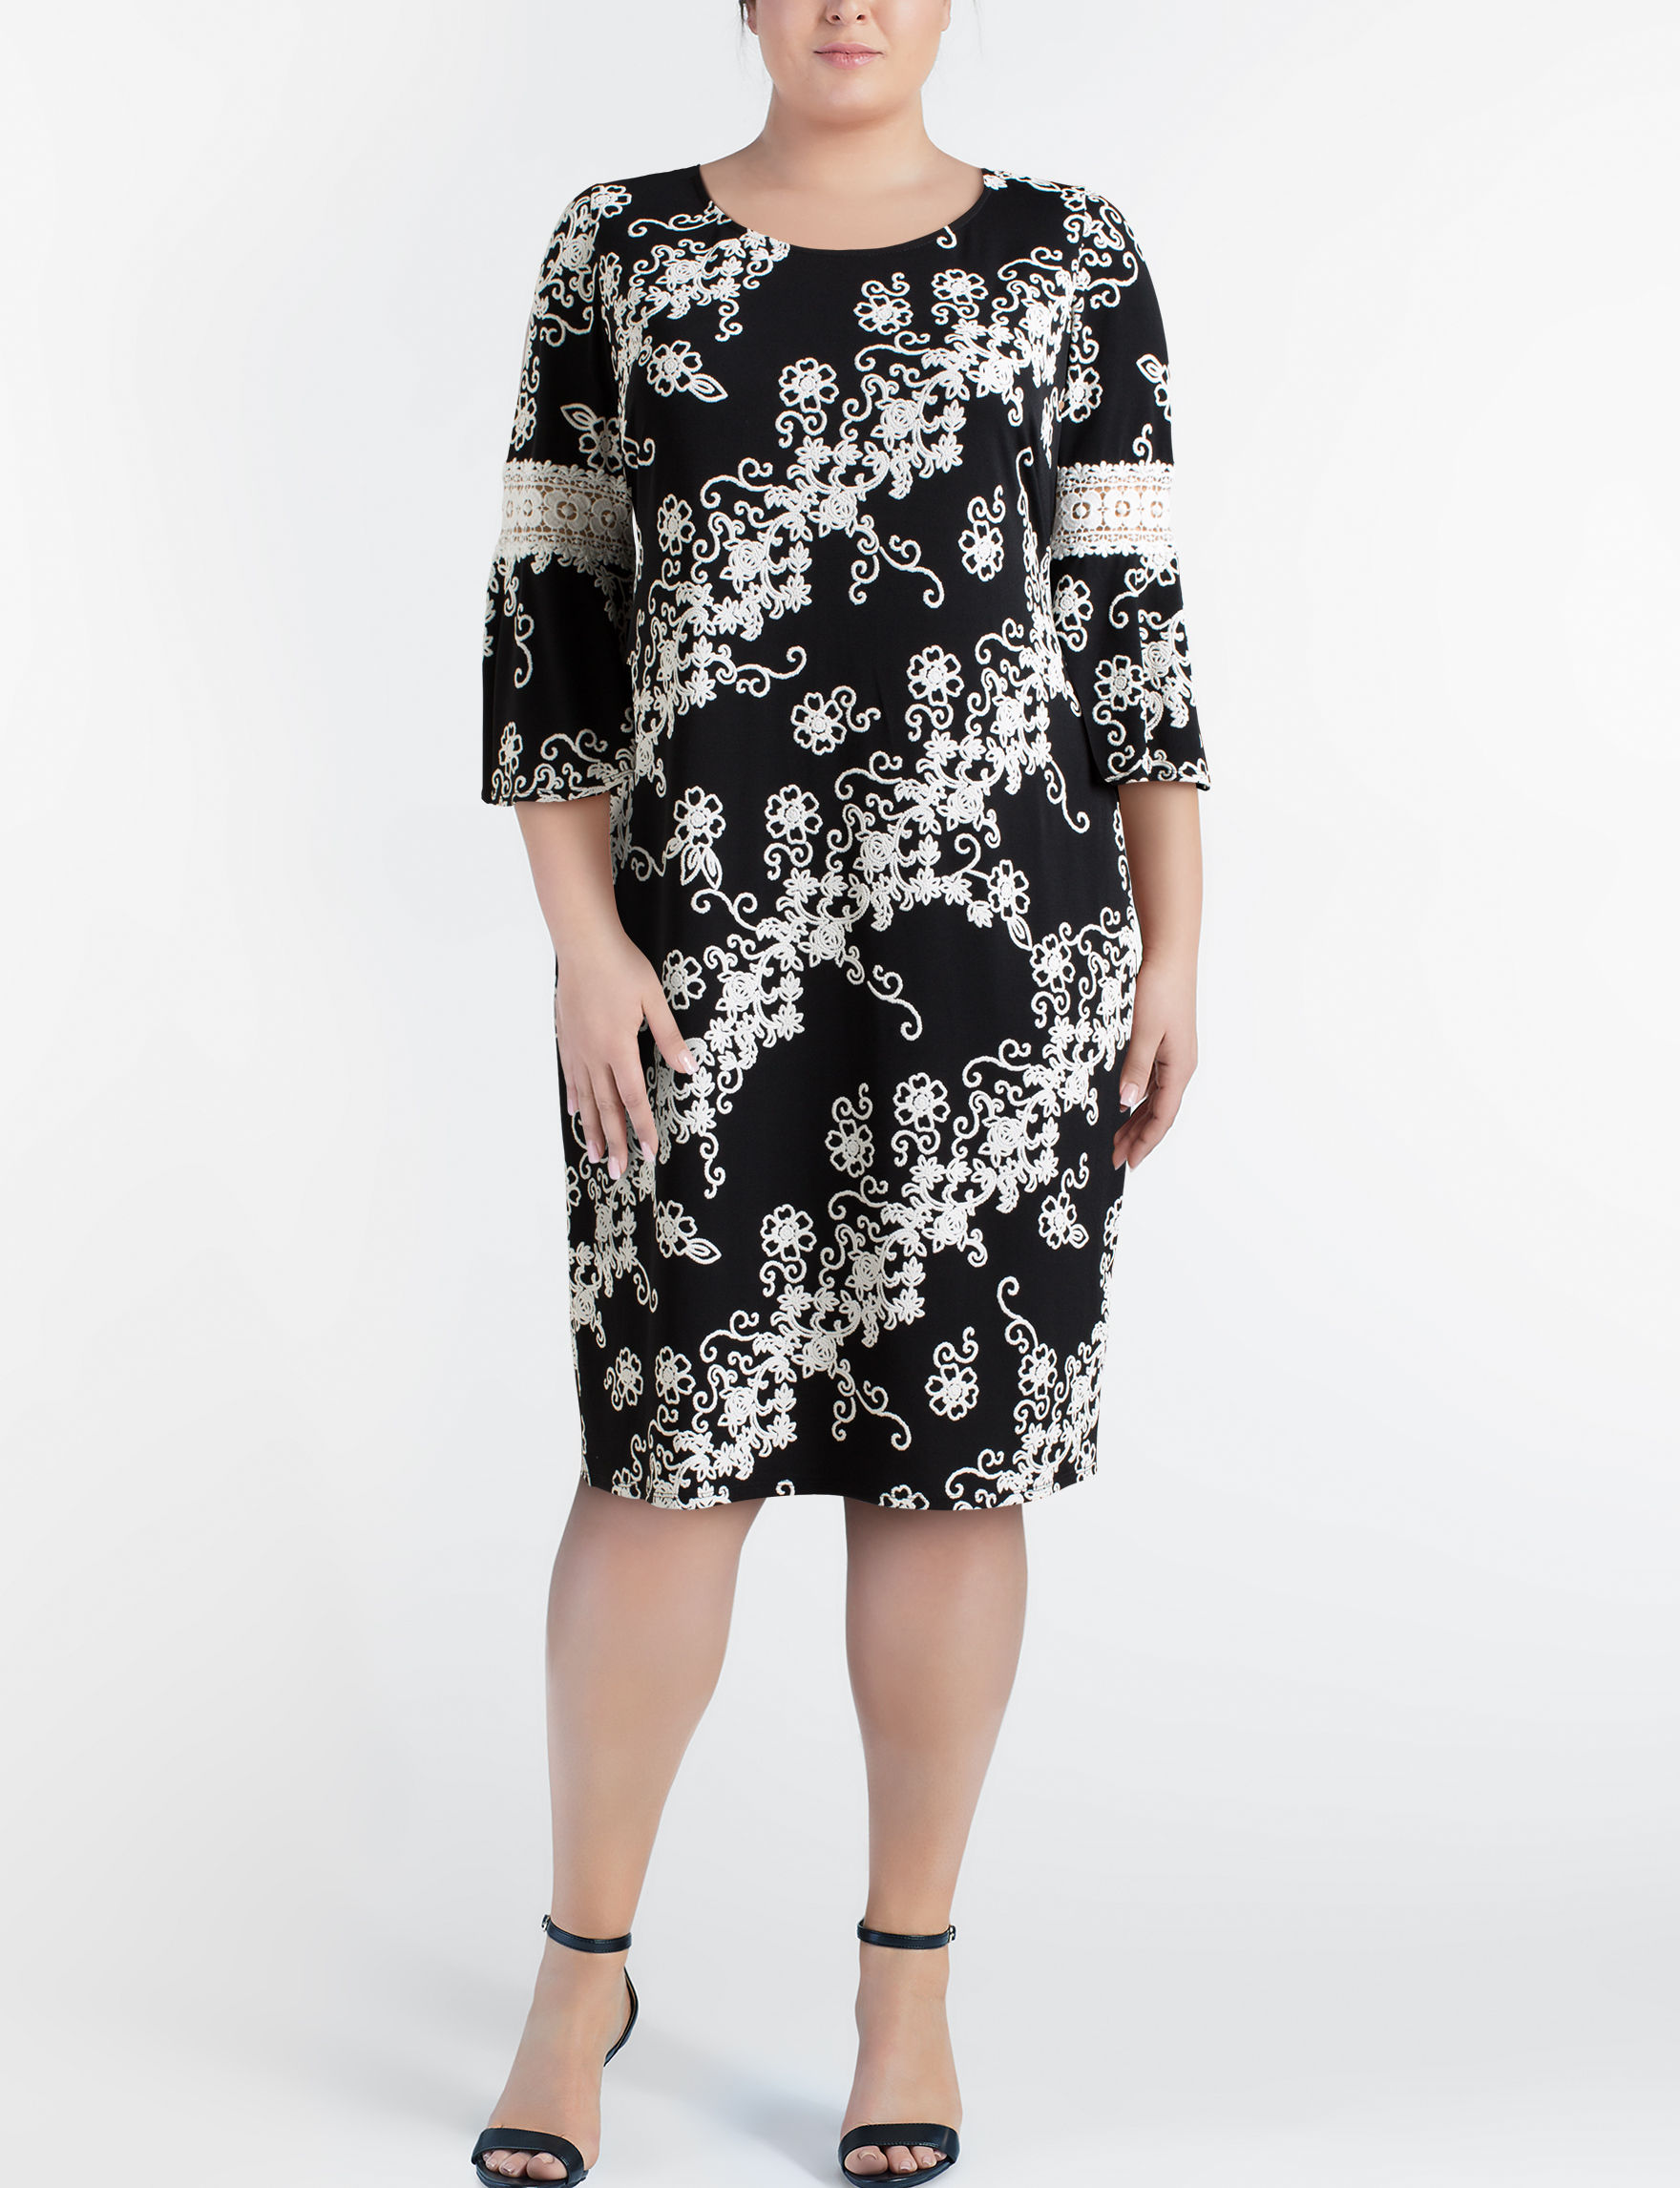 Glamour Black / Beige Everyday & Casual Shift Dresses